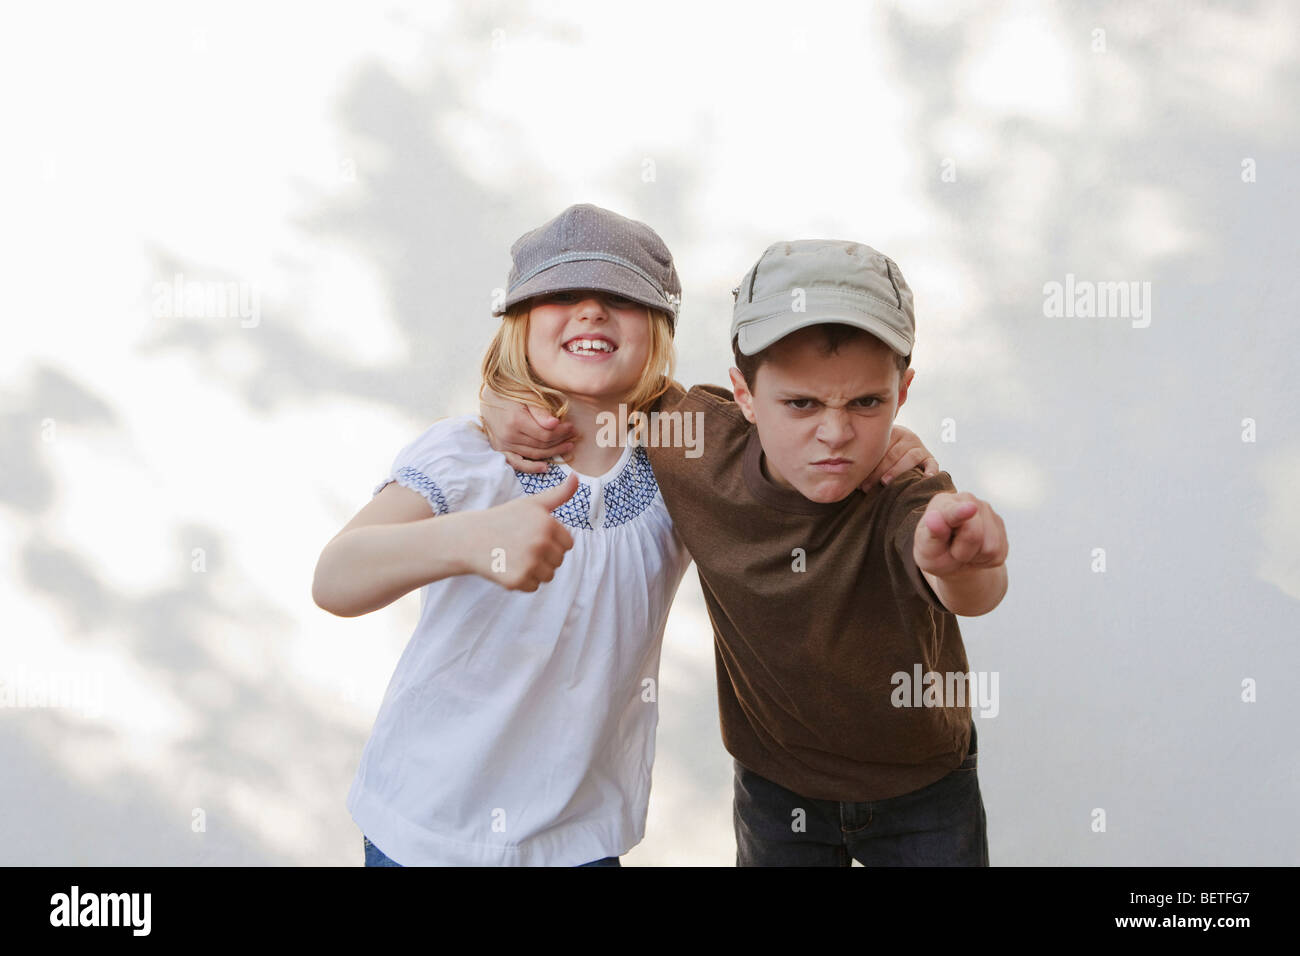 Boy pointing with girl giving thumbs up - Stock Image